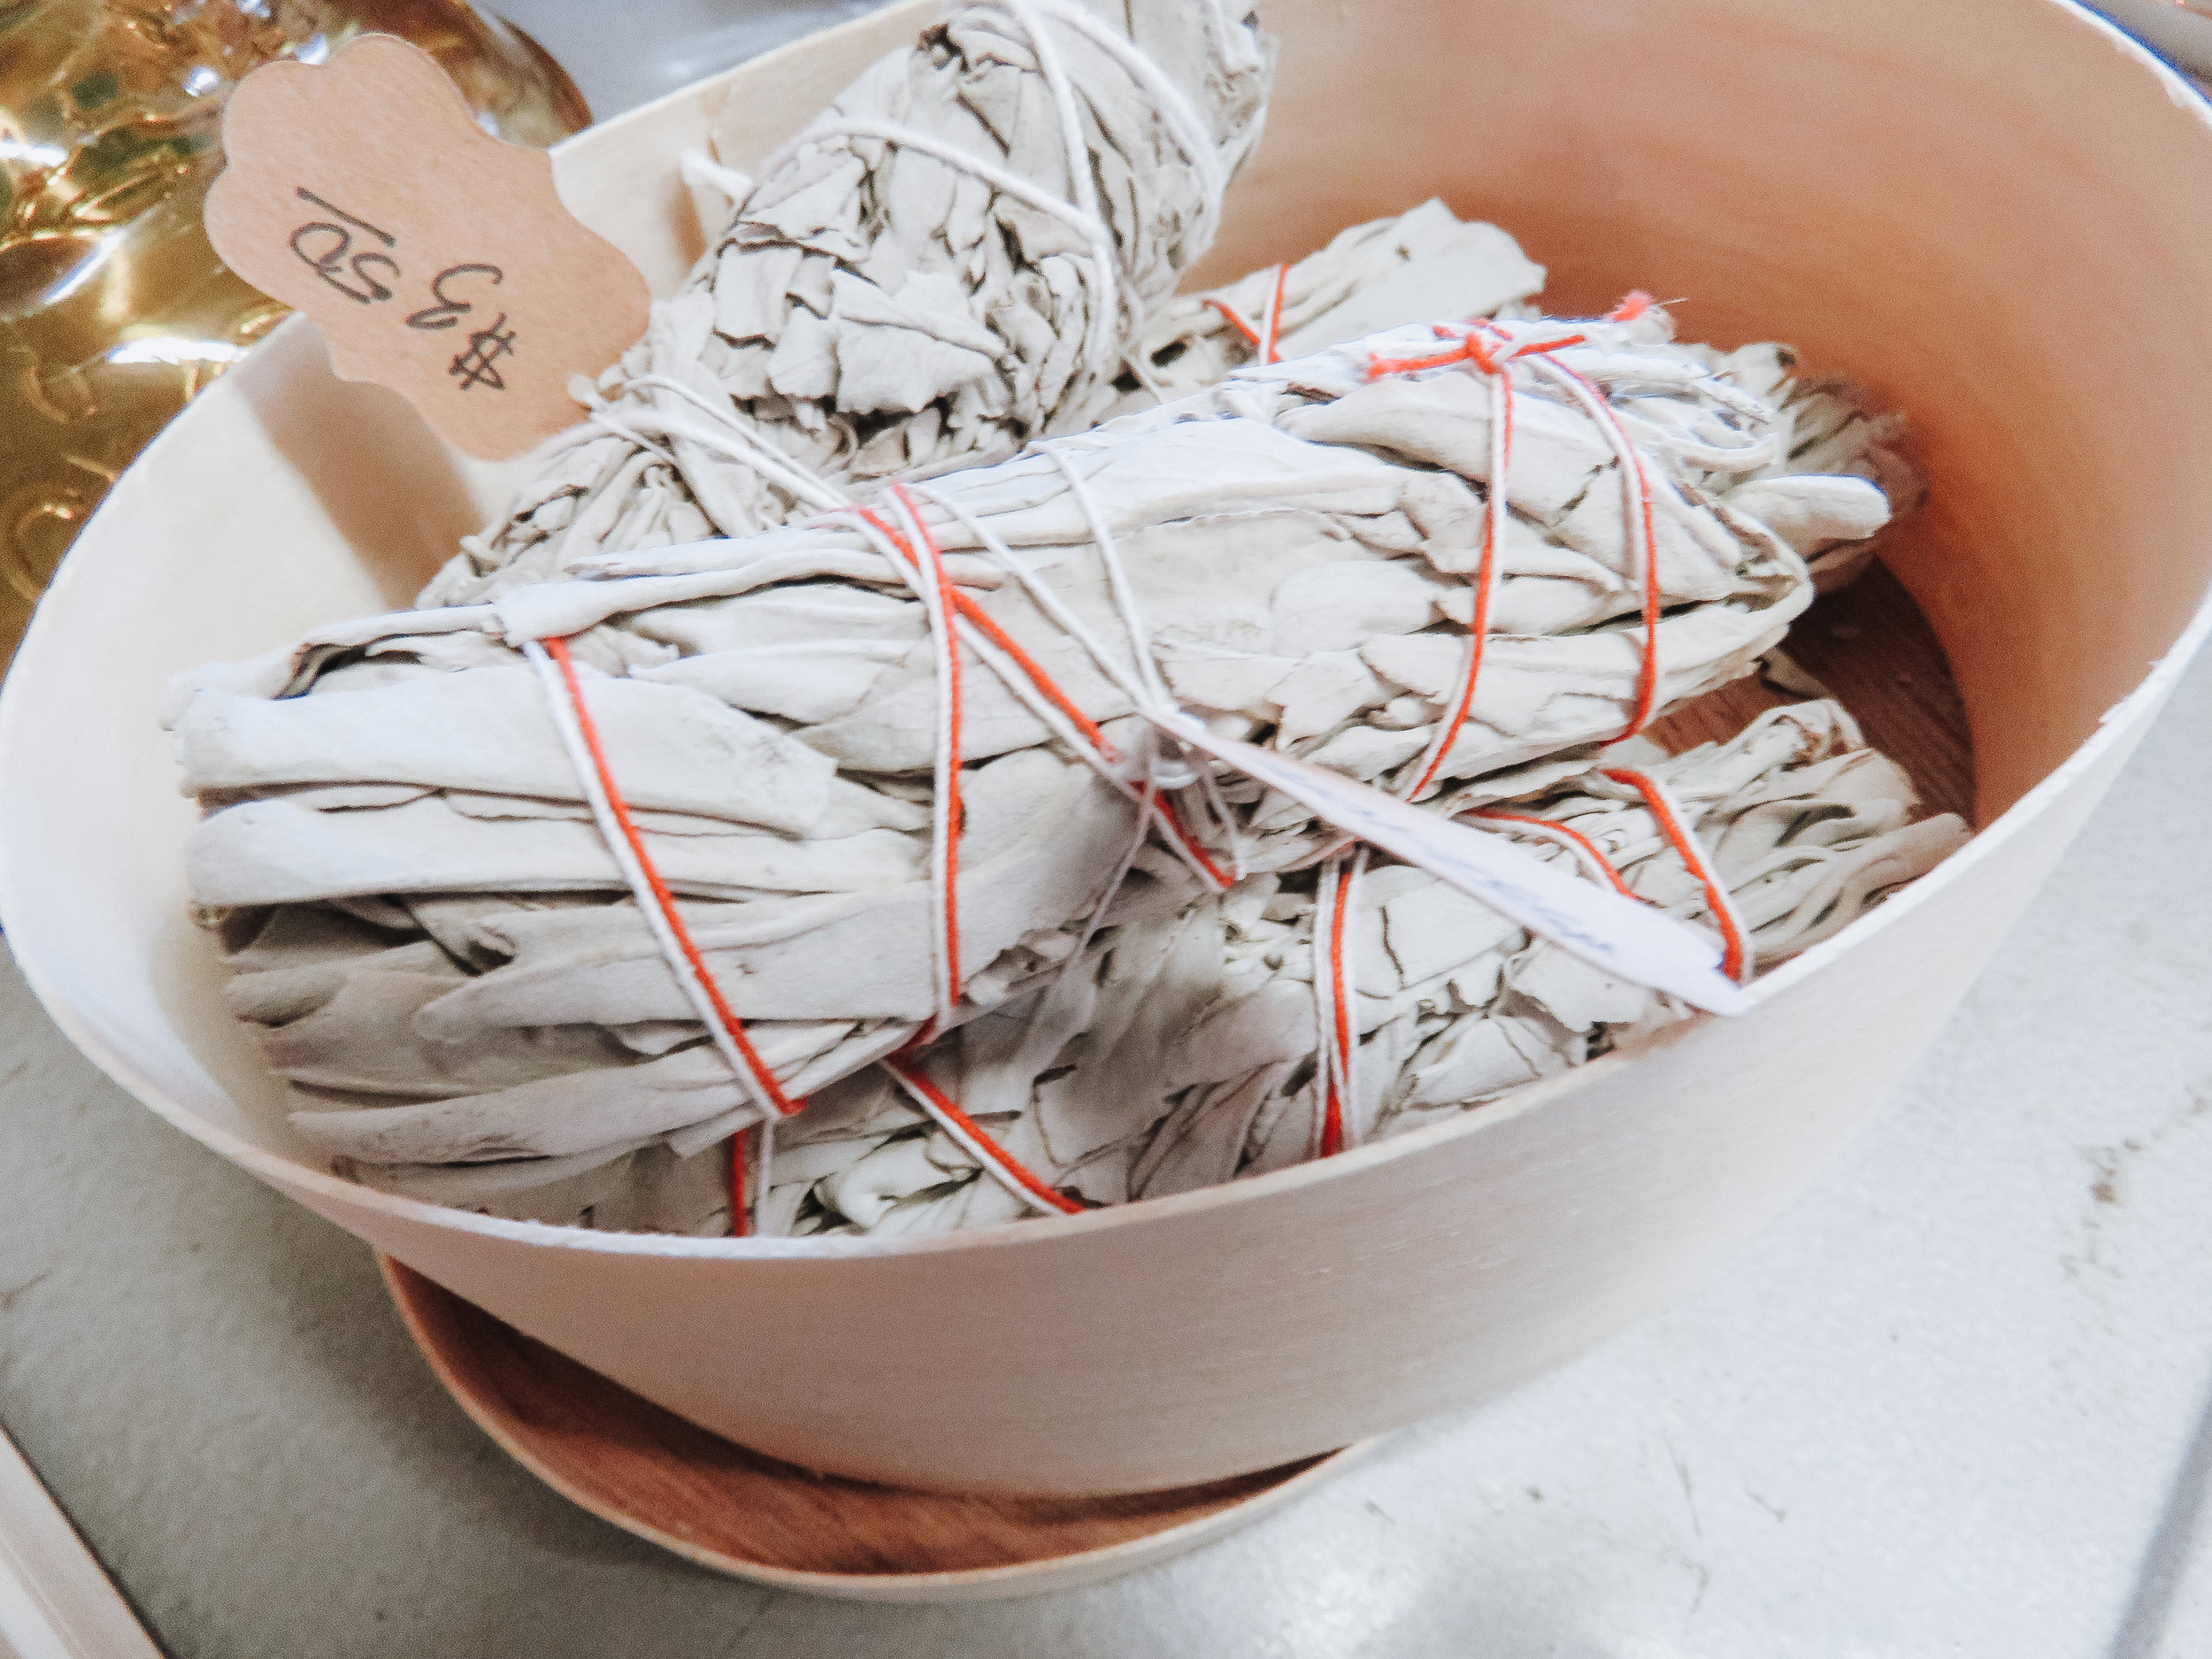 Tied Up With String - Top your gifts with some sage to add a fun earthy element (not to mention how great it smells!)